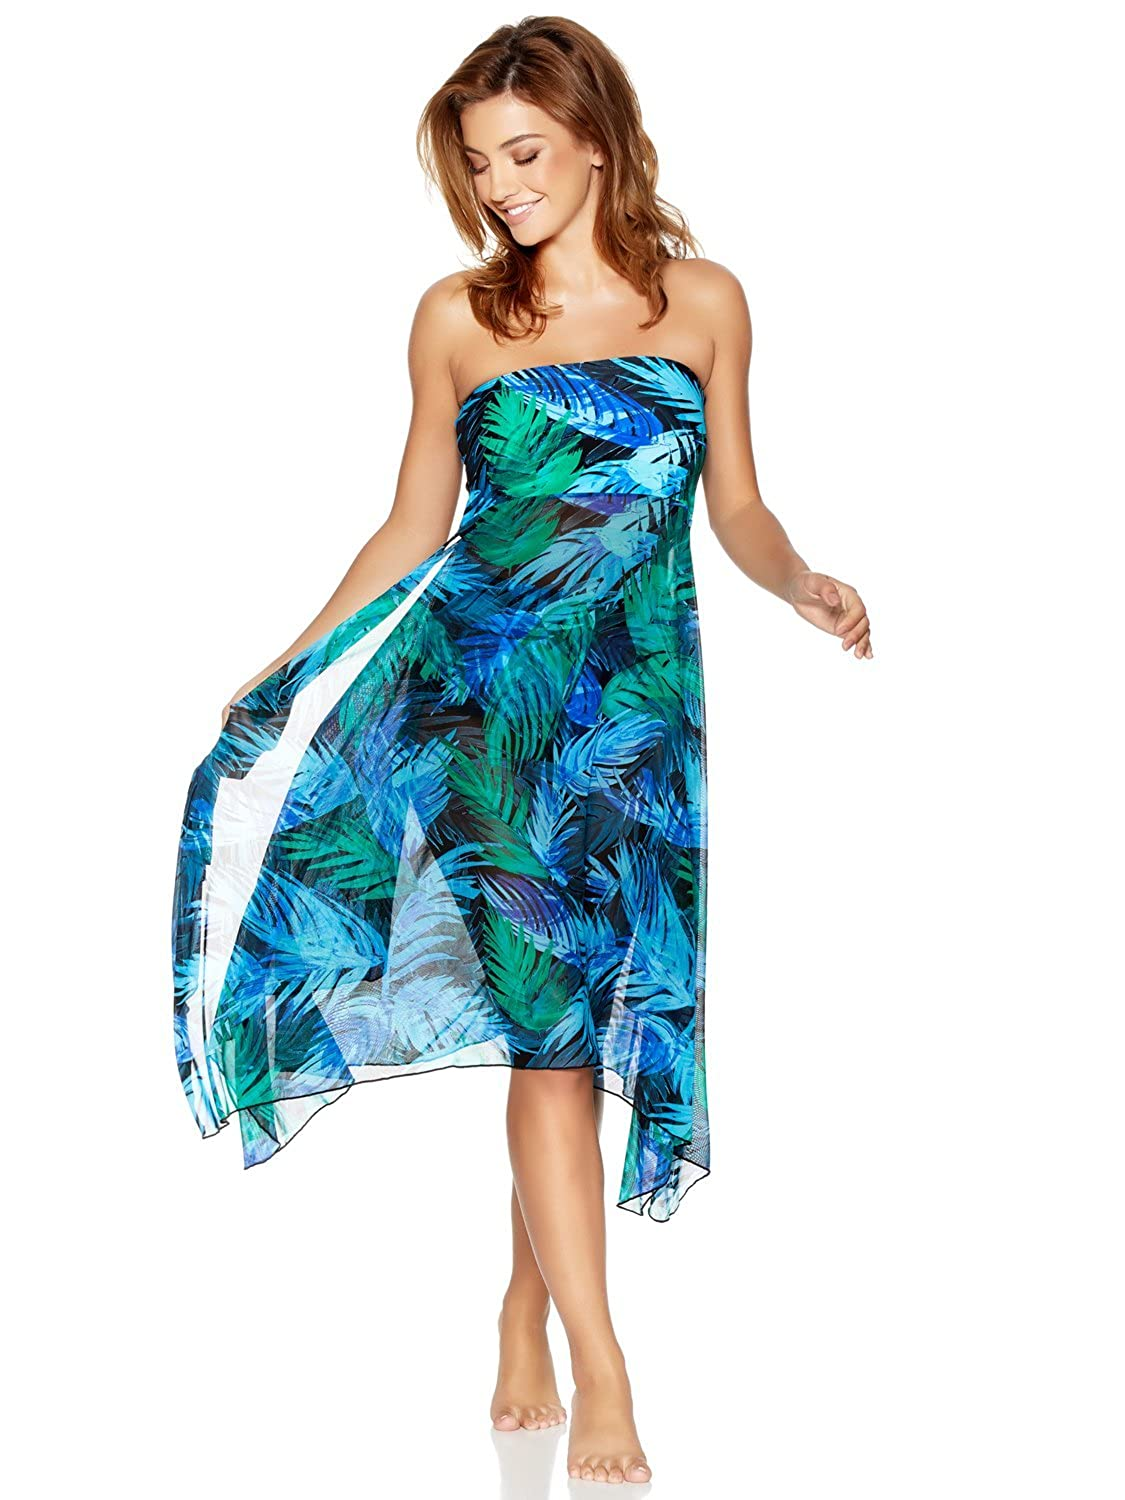 M& Co Ladies Swimwear Blue Palm Print Lightweight Two in One Beach Skirt Dress Cover up